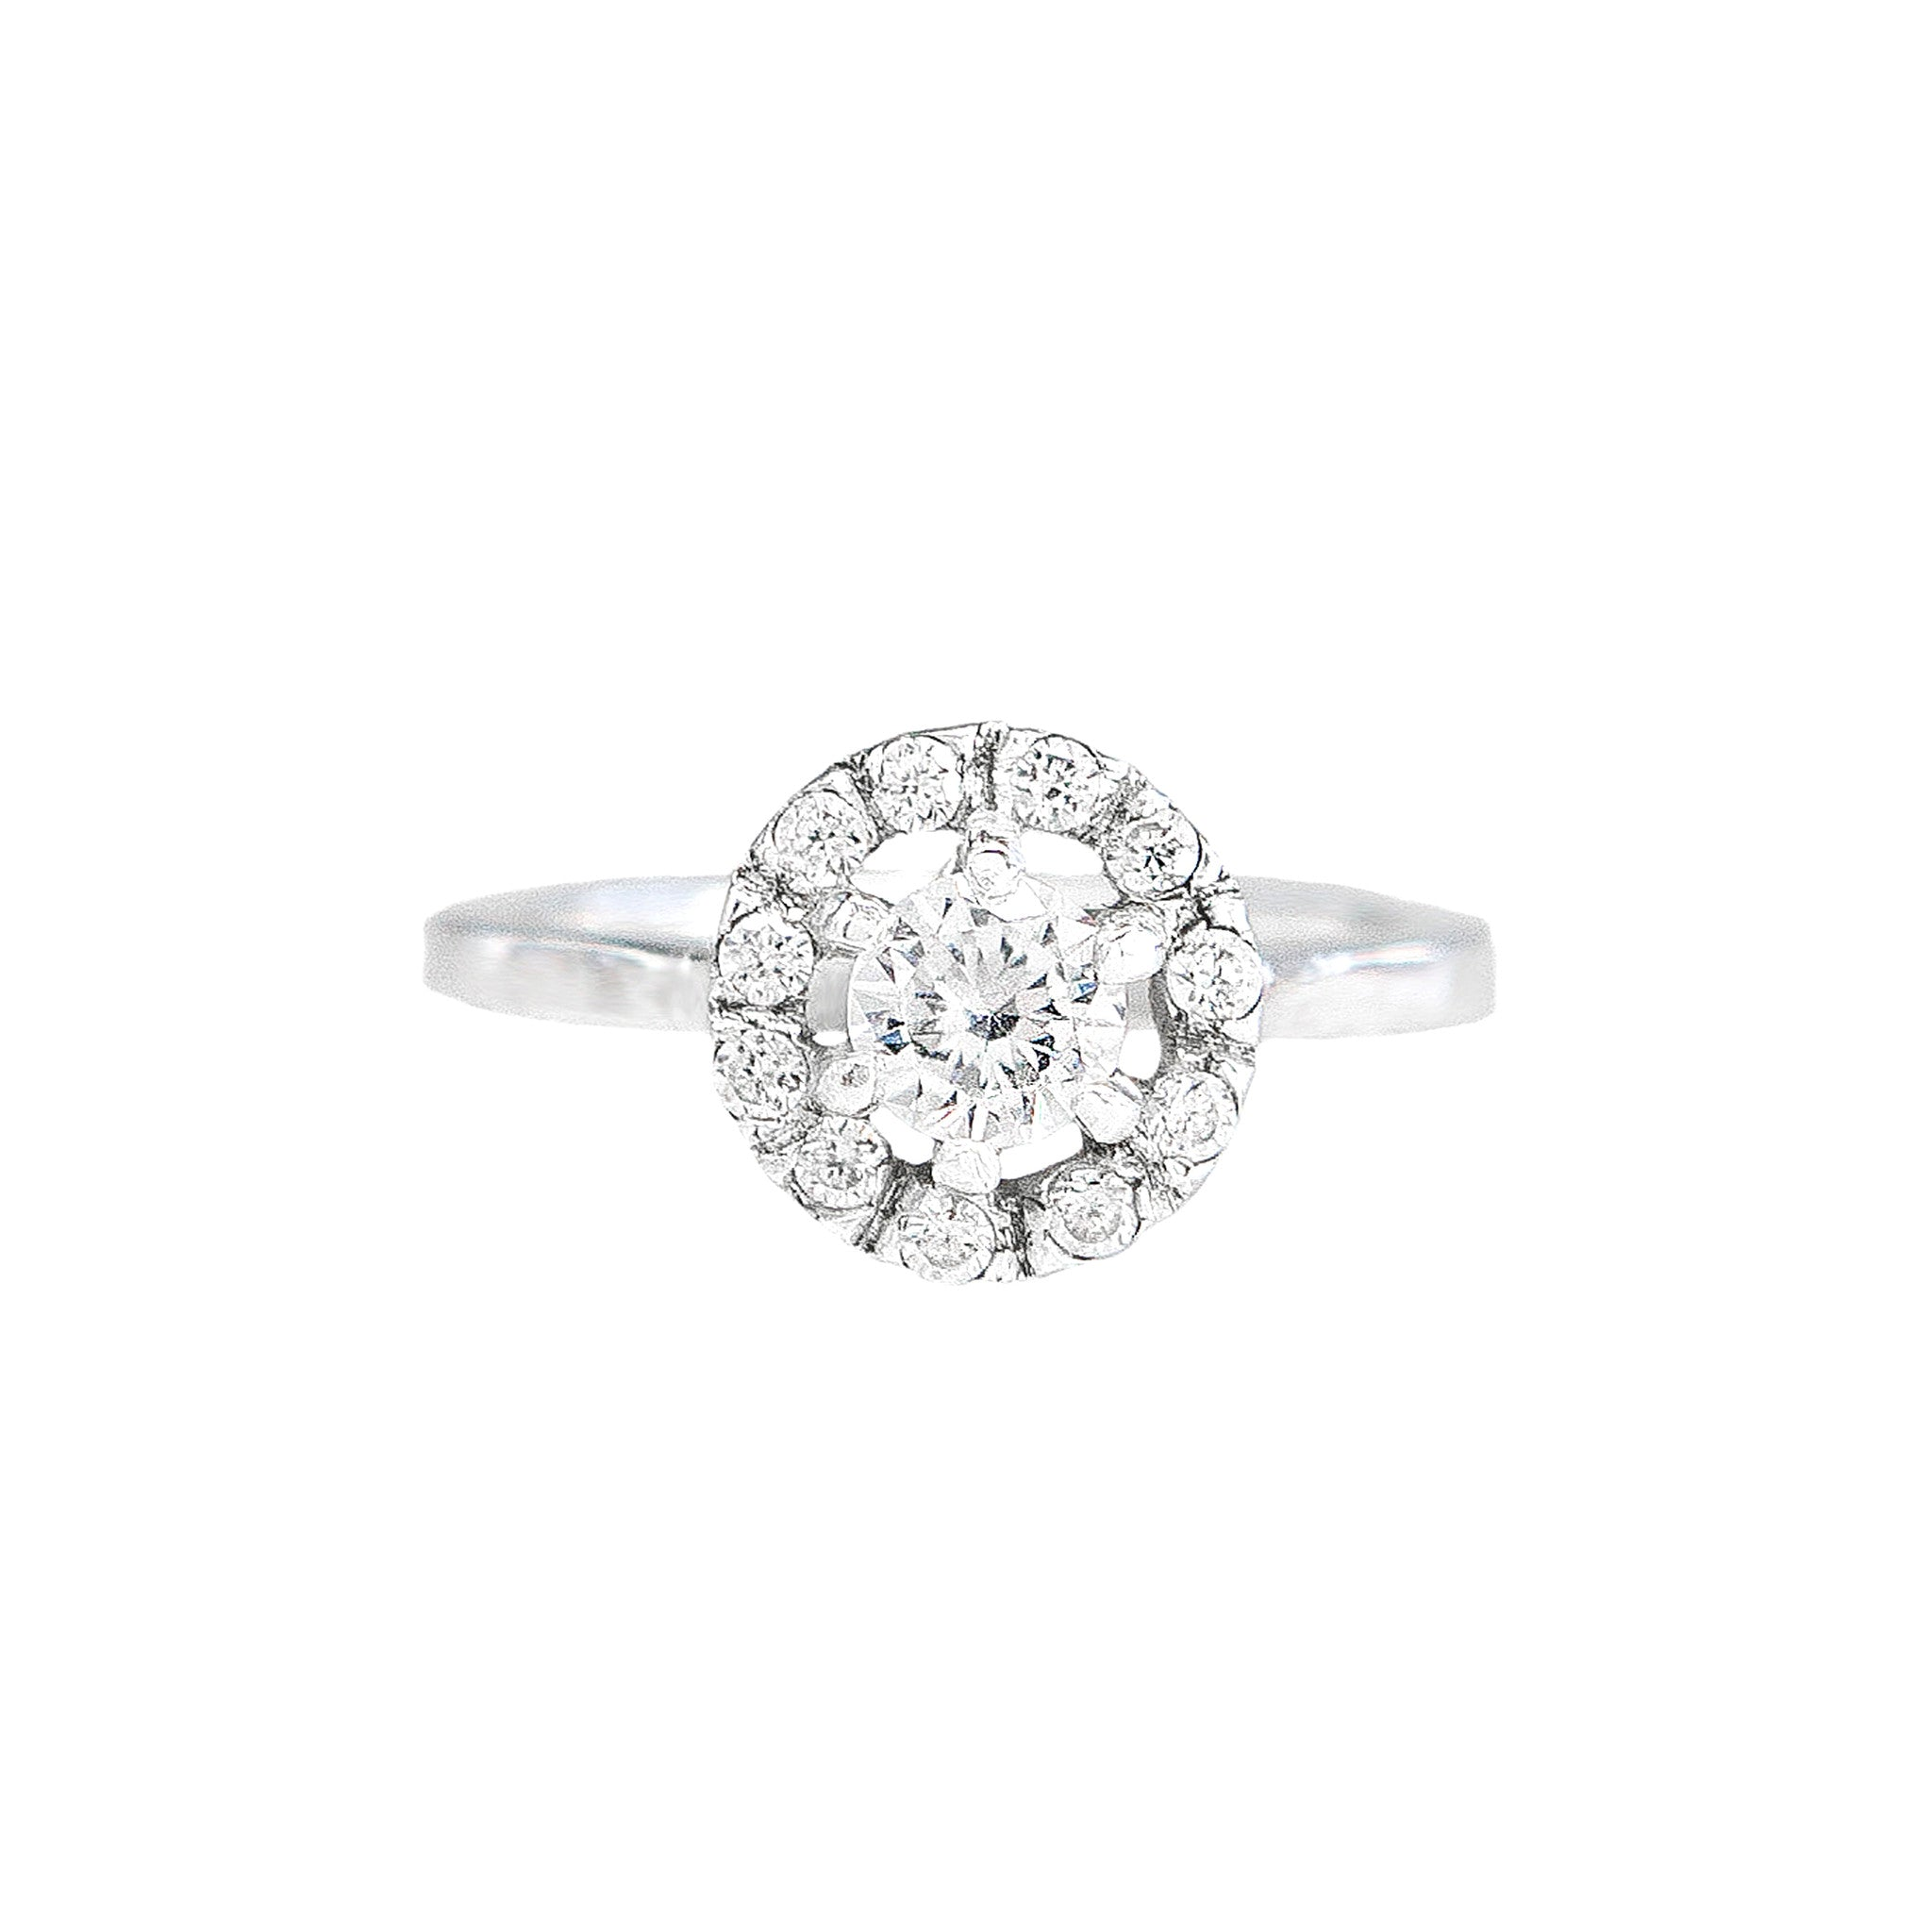 Colette Ethical Halo Engagement Ring